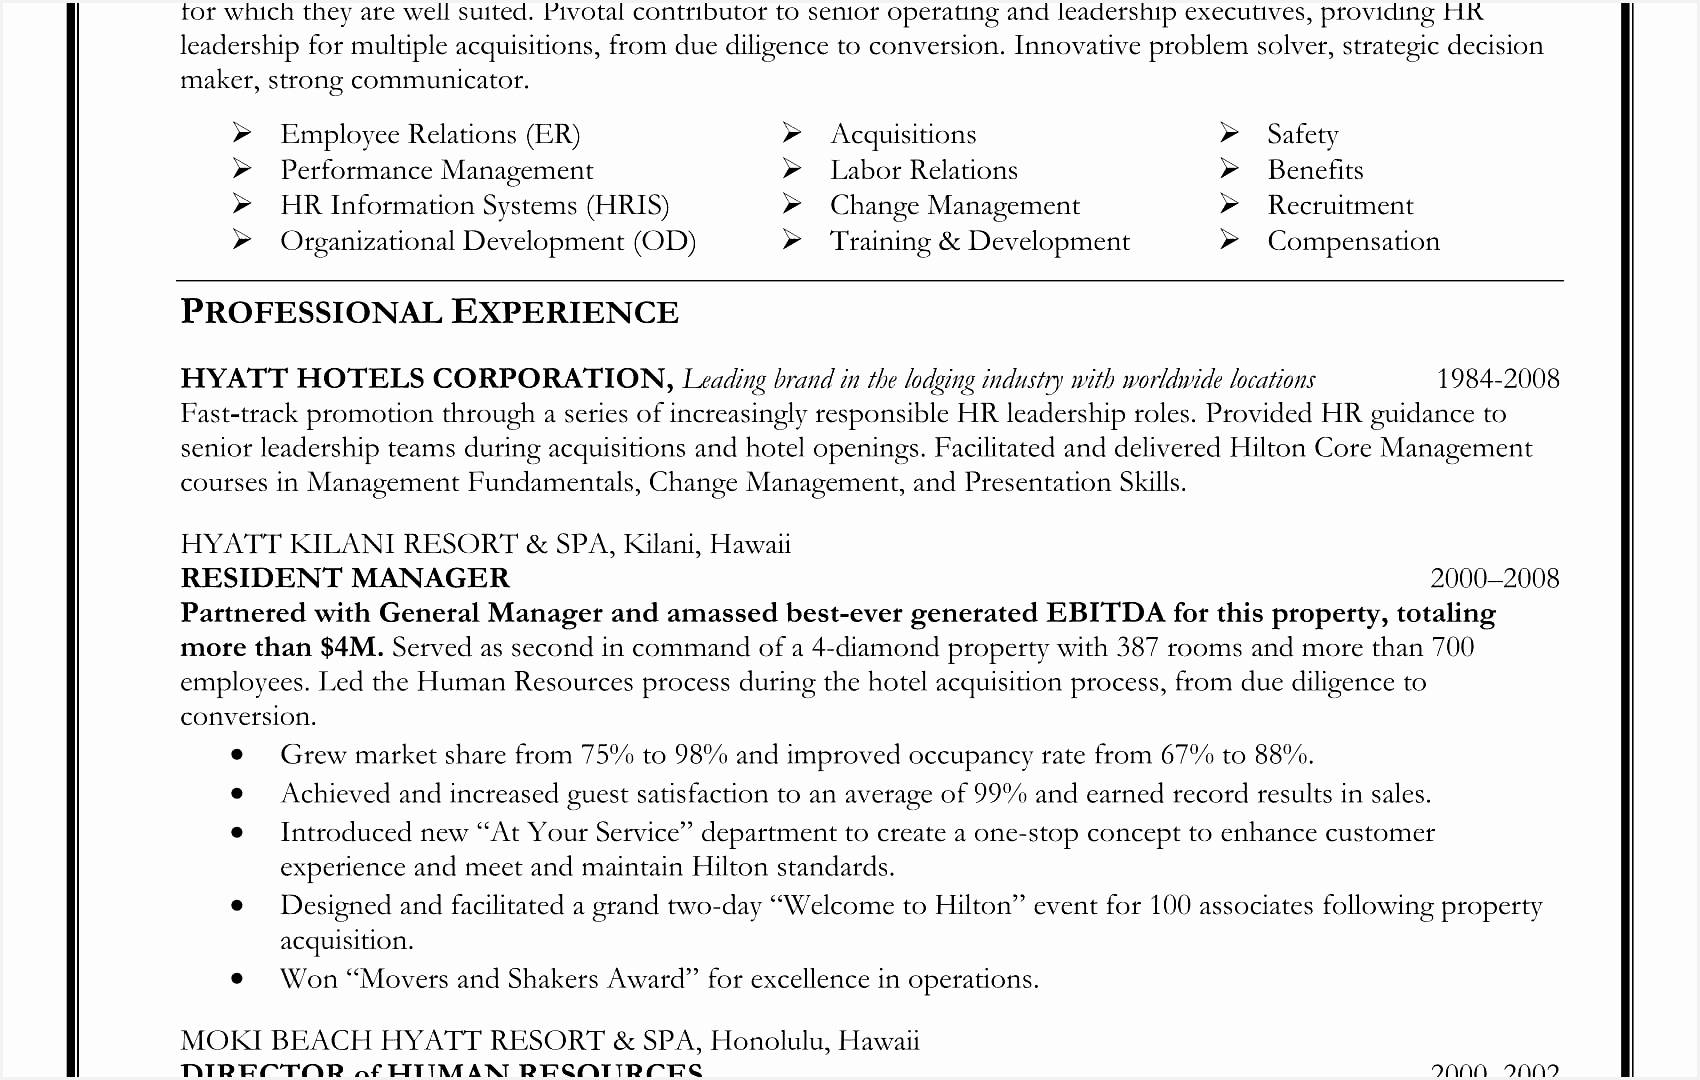 Executive Resume Templates Microsoft Word Assistant Free Download Size 192010801700